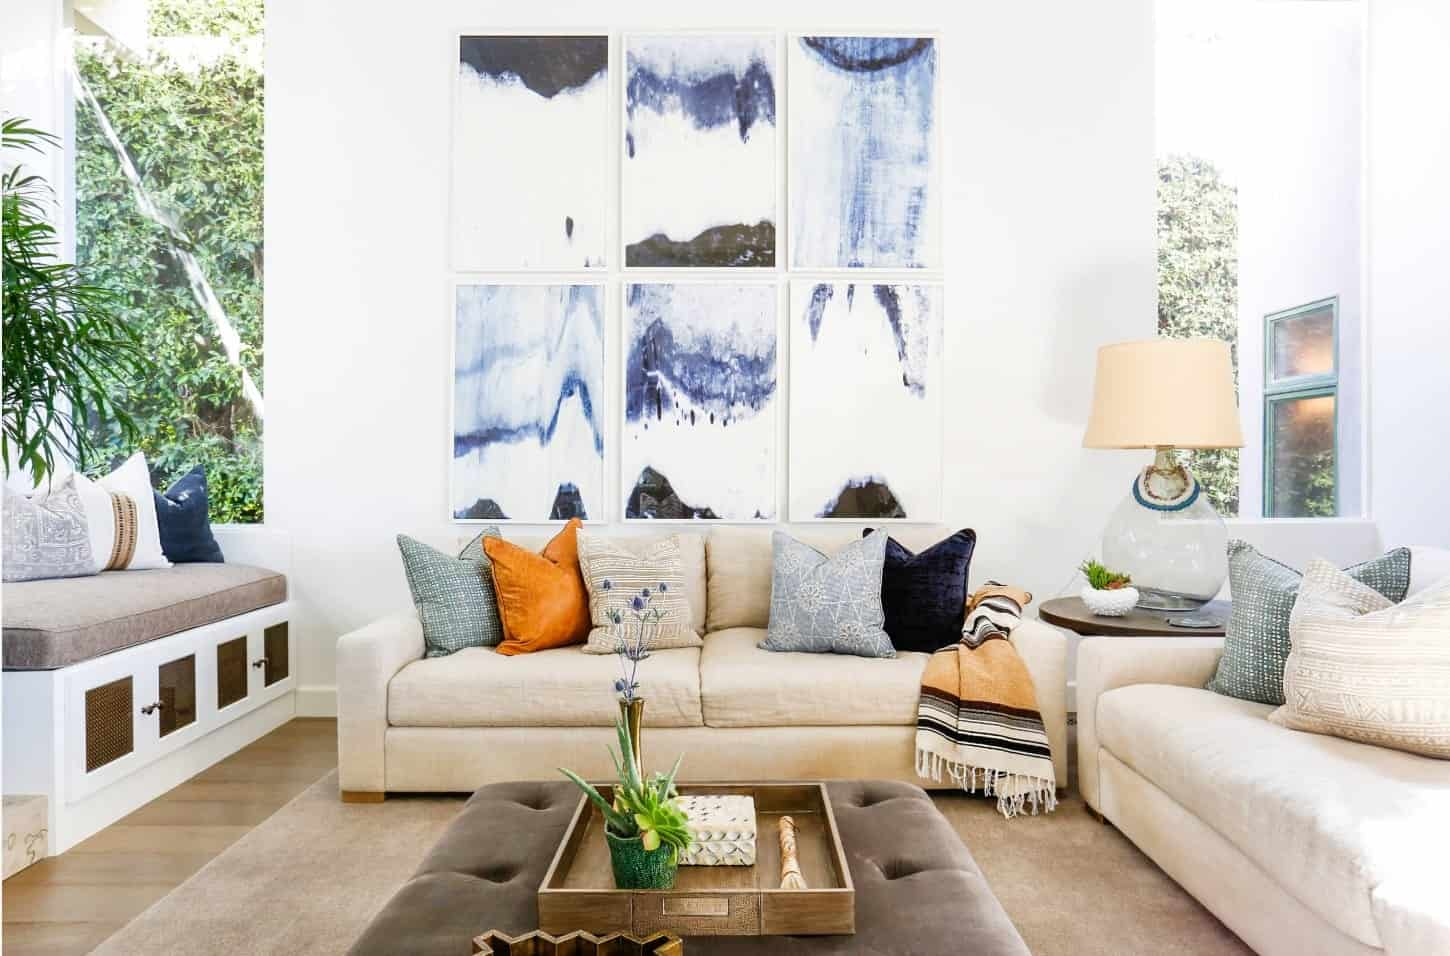 Spanish living room decorated with a multi panel canvas wall art mounted above a beige sectional sofa that's styled with multi-colored pillows and striped blanket.